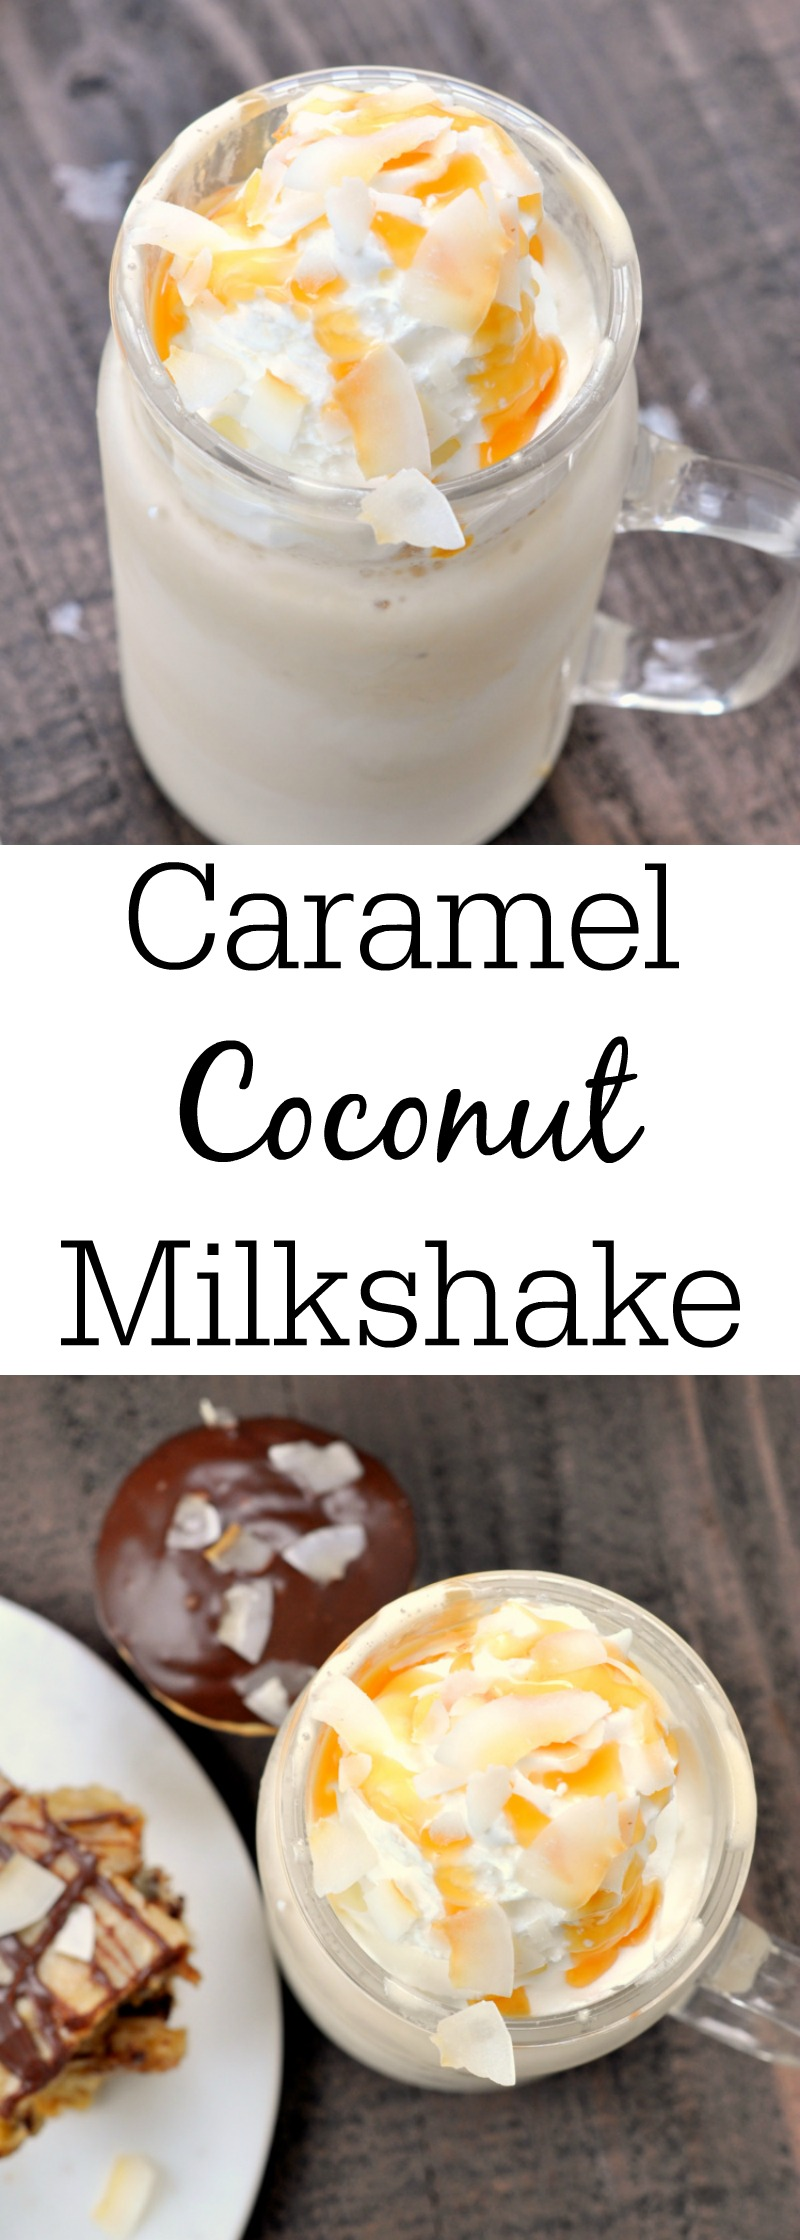 Caramel Coconut Milkshake - My Suburban Kitchen